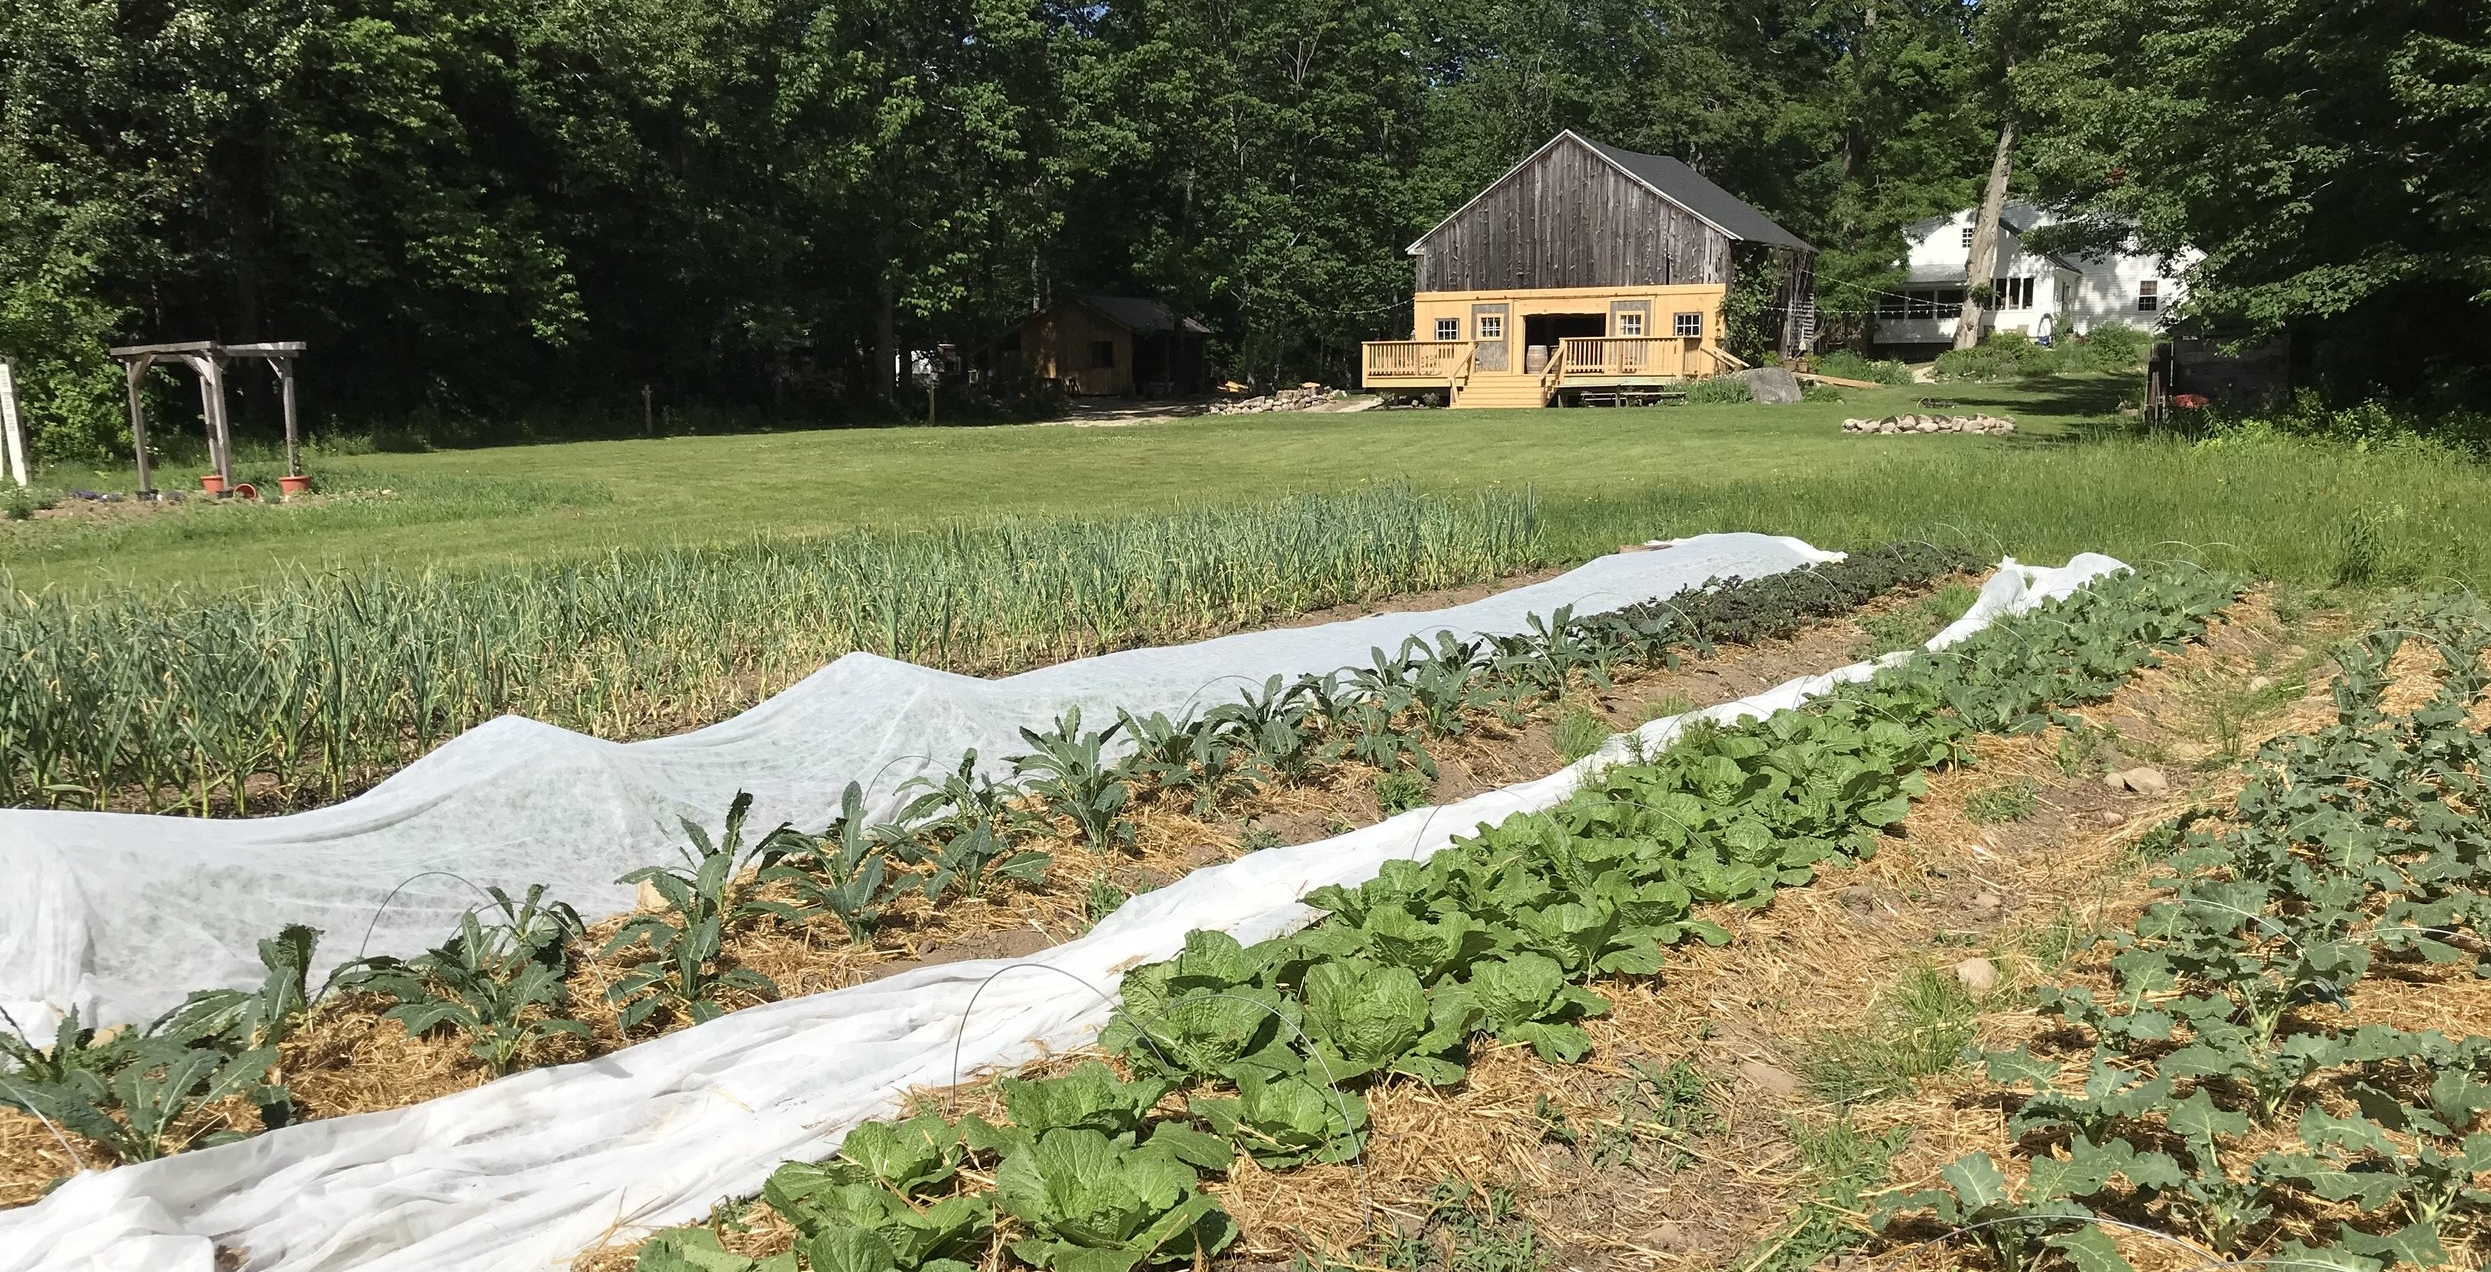 Straw mulch and that beautiful finished deck off the back of the barn!